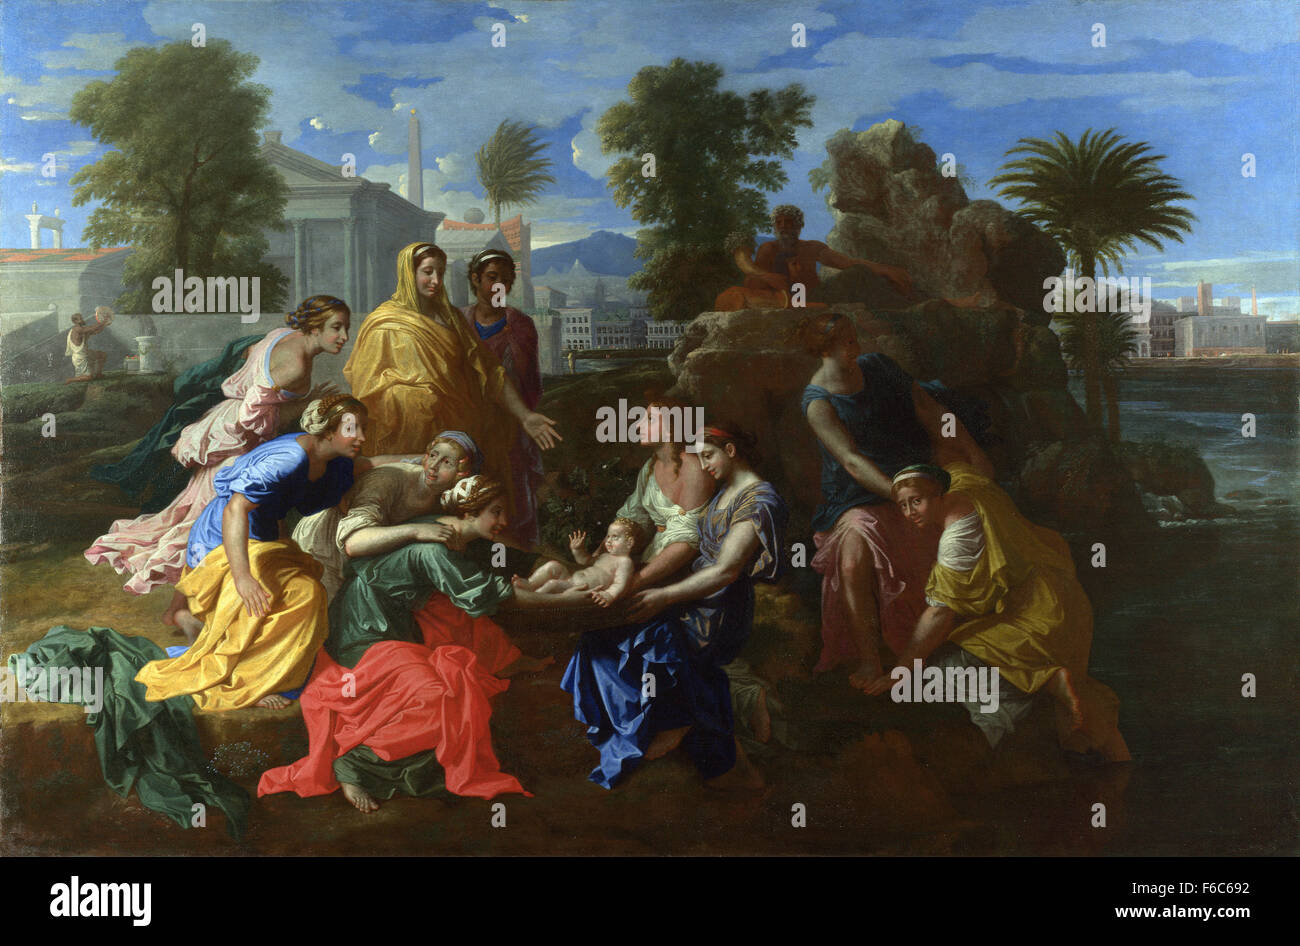 THE FINDING OF MOSES FROM THE NILE OF EGYPT PAINTING BIBLE ART REAL CANVAS PRINT